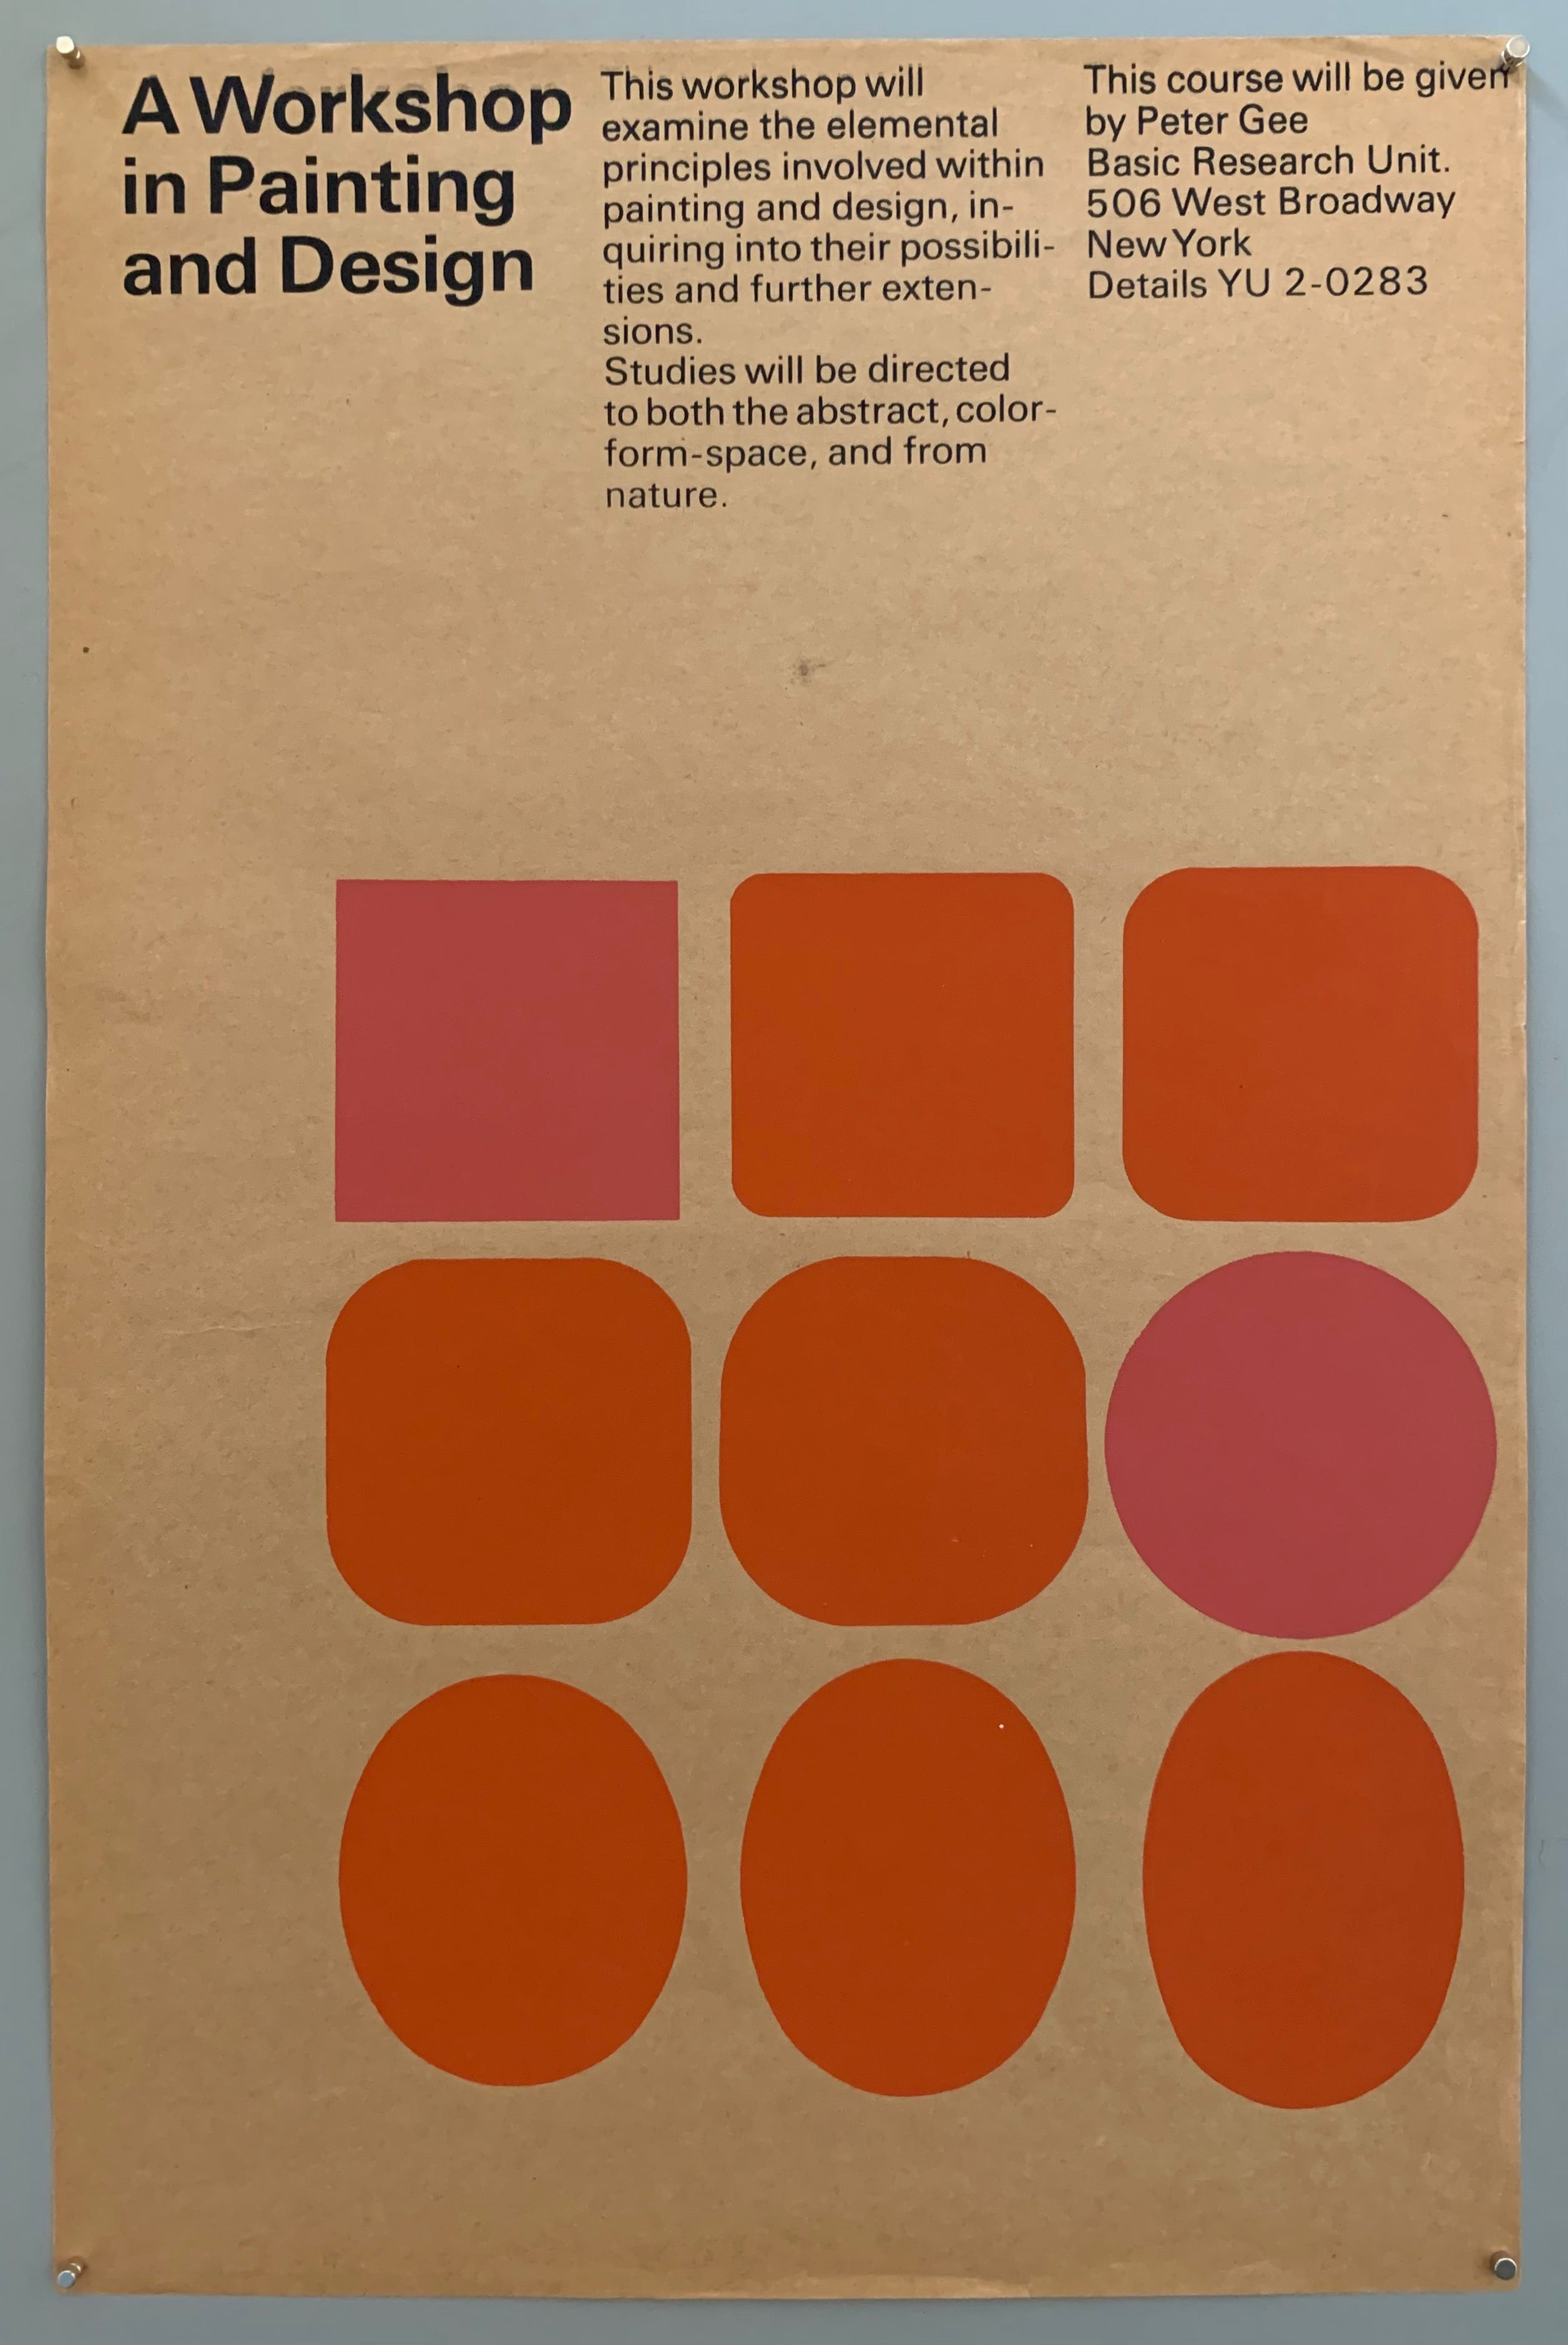 A plain sheet with black text at the top has a square of shapes, starting out in squares and then turning to circles. The colors are pinks and oranges on a tan textured paper.